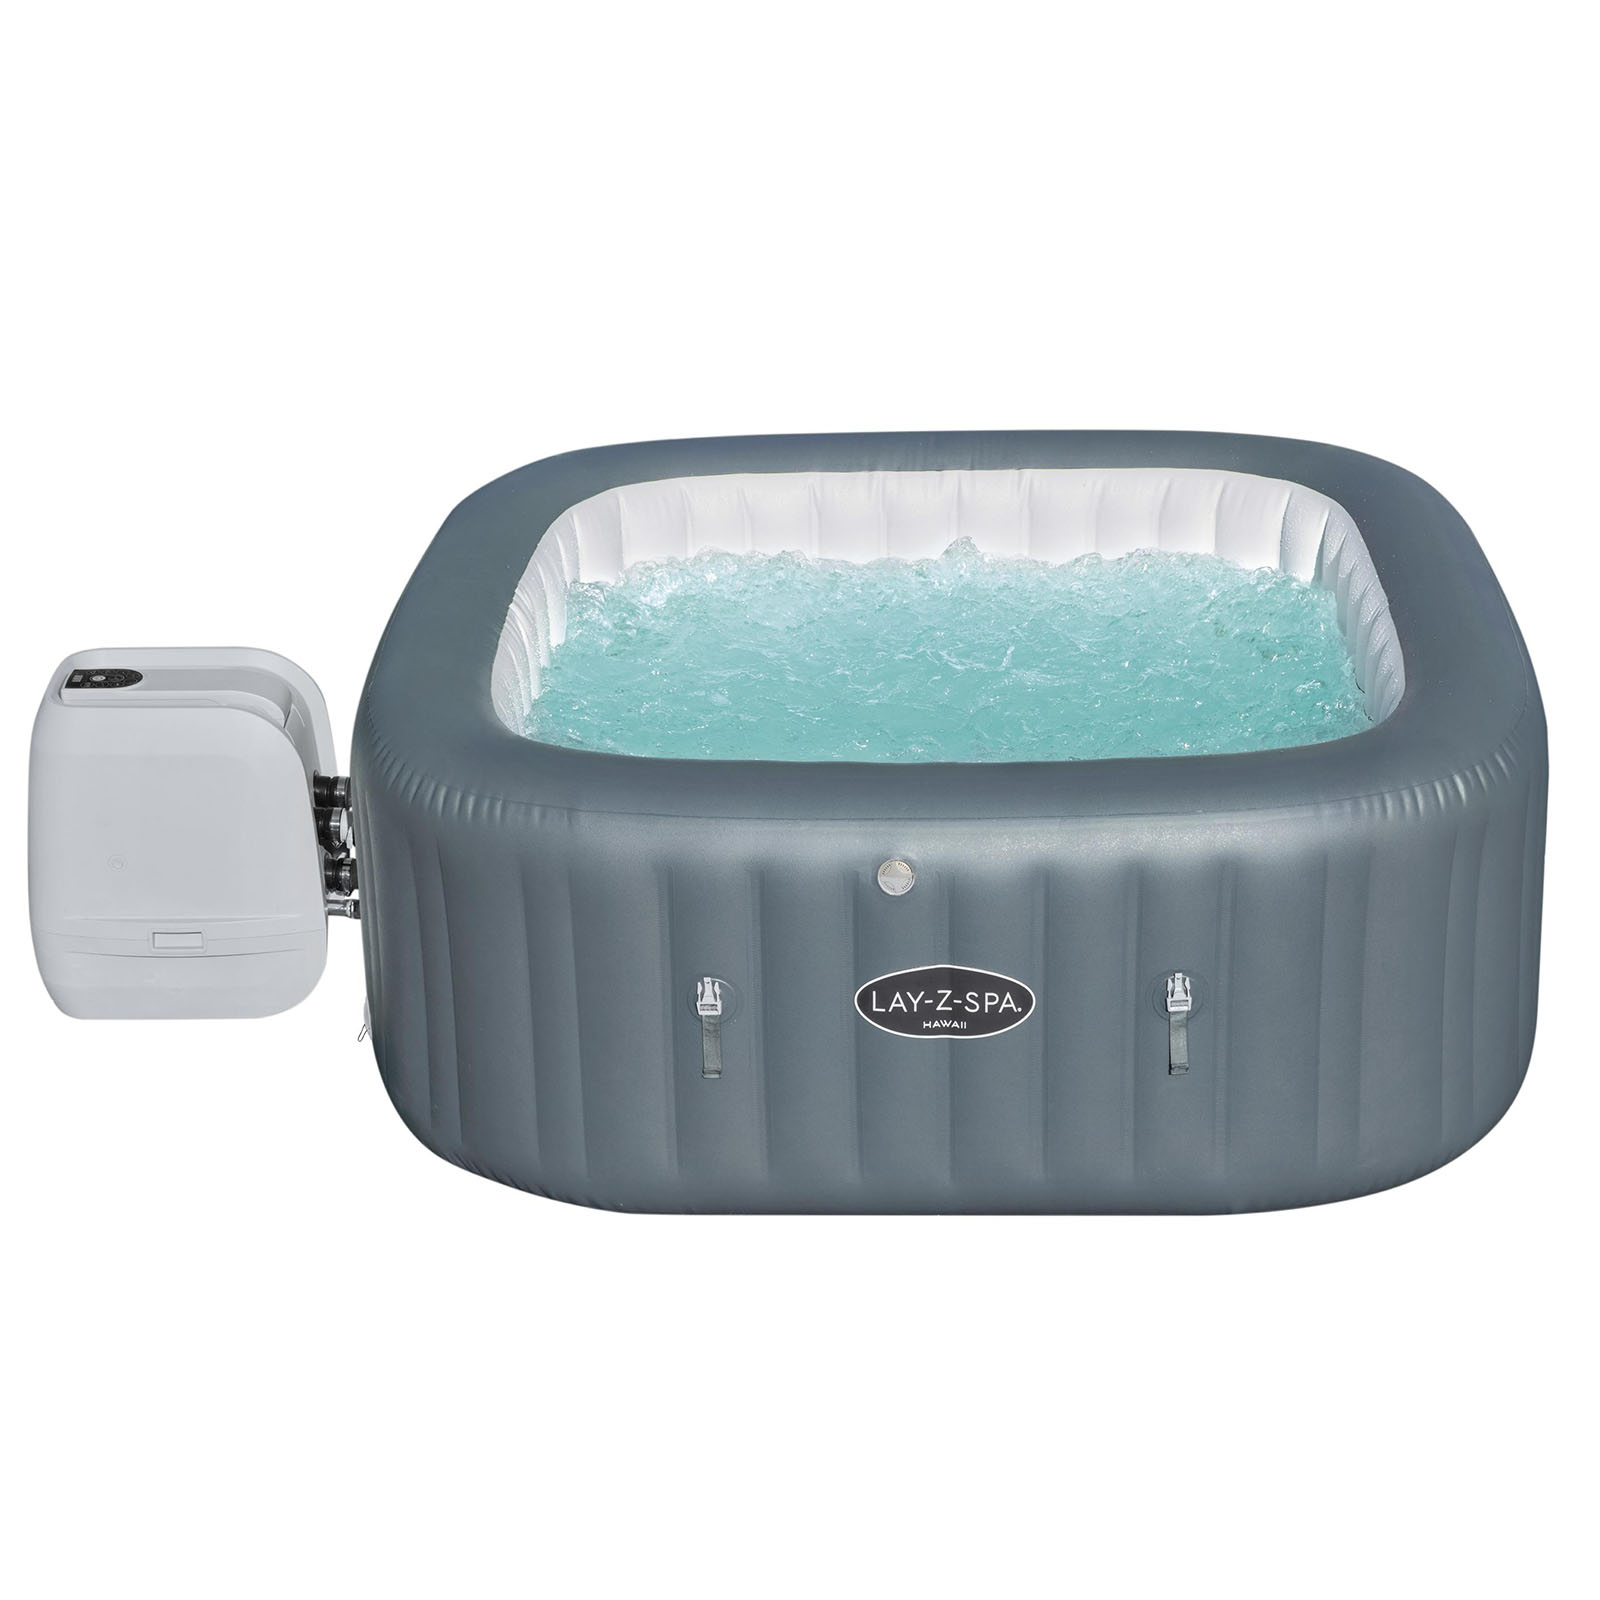 Bestway Lay-Z-Spa HAWAII - Heated Hot Tub Spa Massage - 140 Jets - 4-6 People